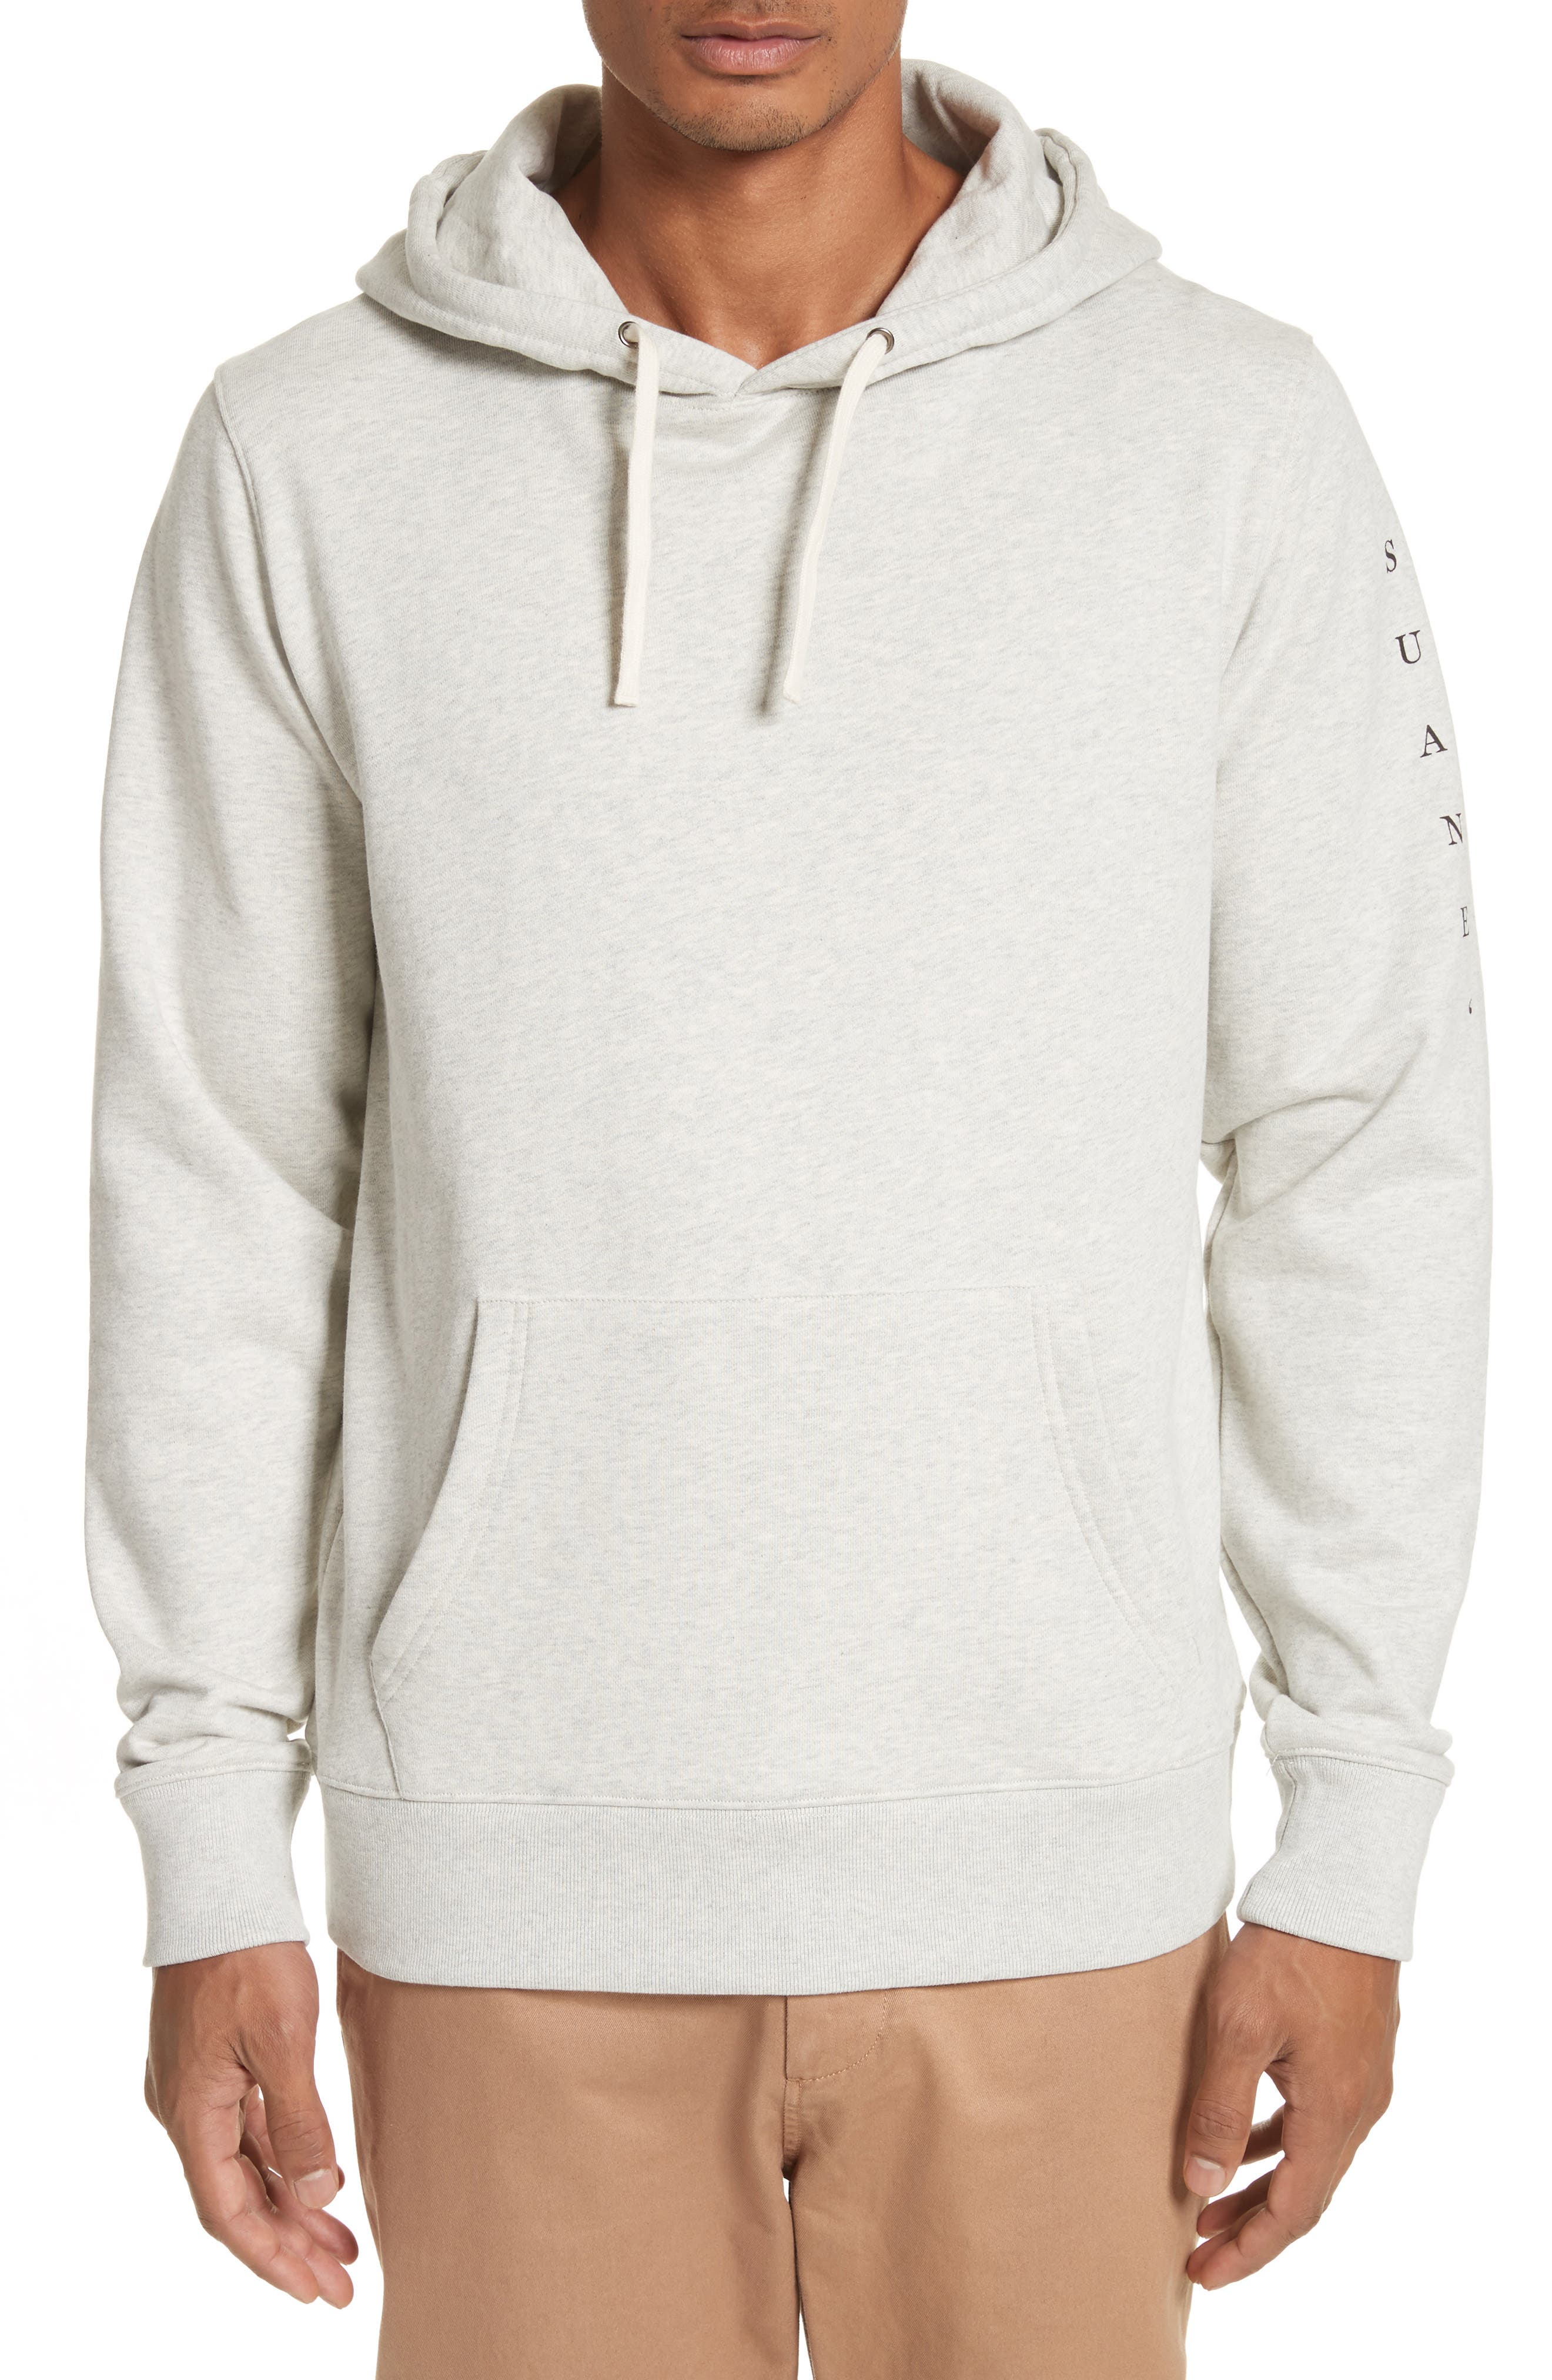 Ditch Stacked Hoodie,                         Main,                         color, 290